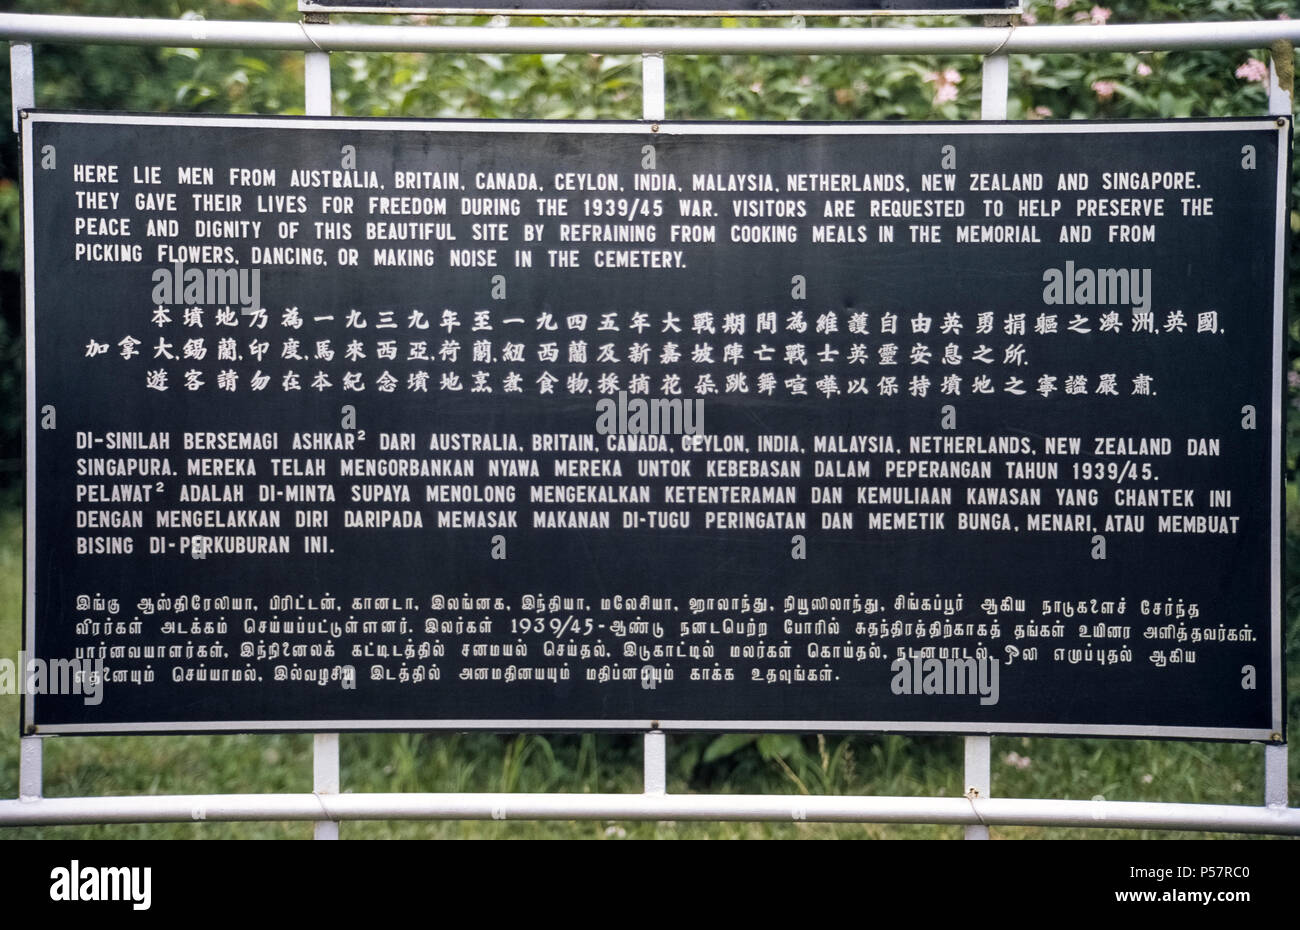 An outdoor sign in four languages unexpectedly requests visitors not to cook meals, pick flowers, dance, or make noise in the Kranji War Memorial, a hillside cemetery in Singapore that honors soldiers from nine nations who gave their lives in the line of duty during World War II. White gravestones mark the remains of 4,461 men and women from Australia, Britain, Canada, Ceylon (now Sri Lanka), India, Malaysia, Netherlands, New Zealand and Singapore. Stock Photo